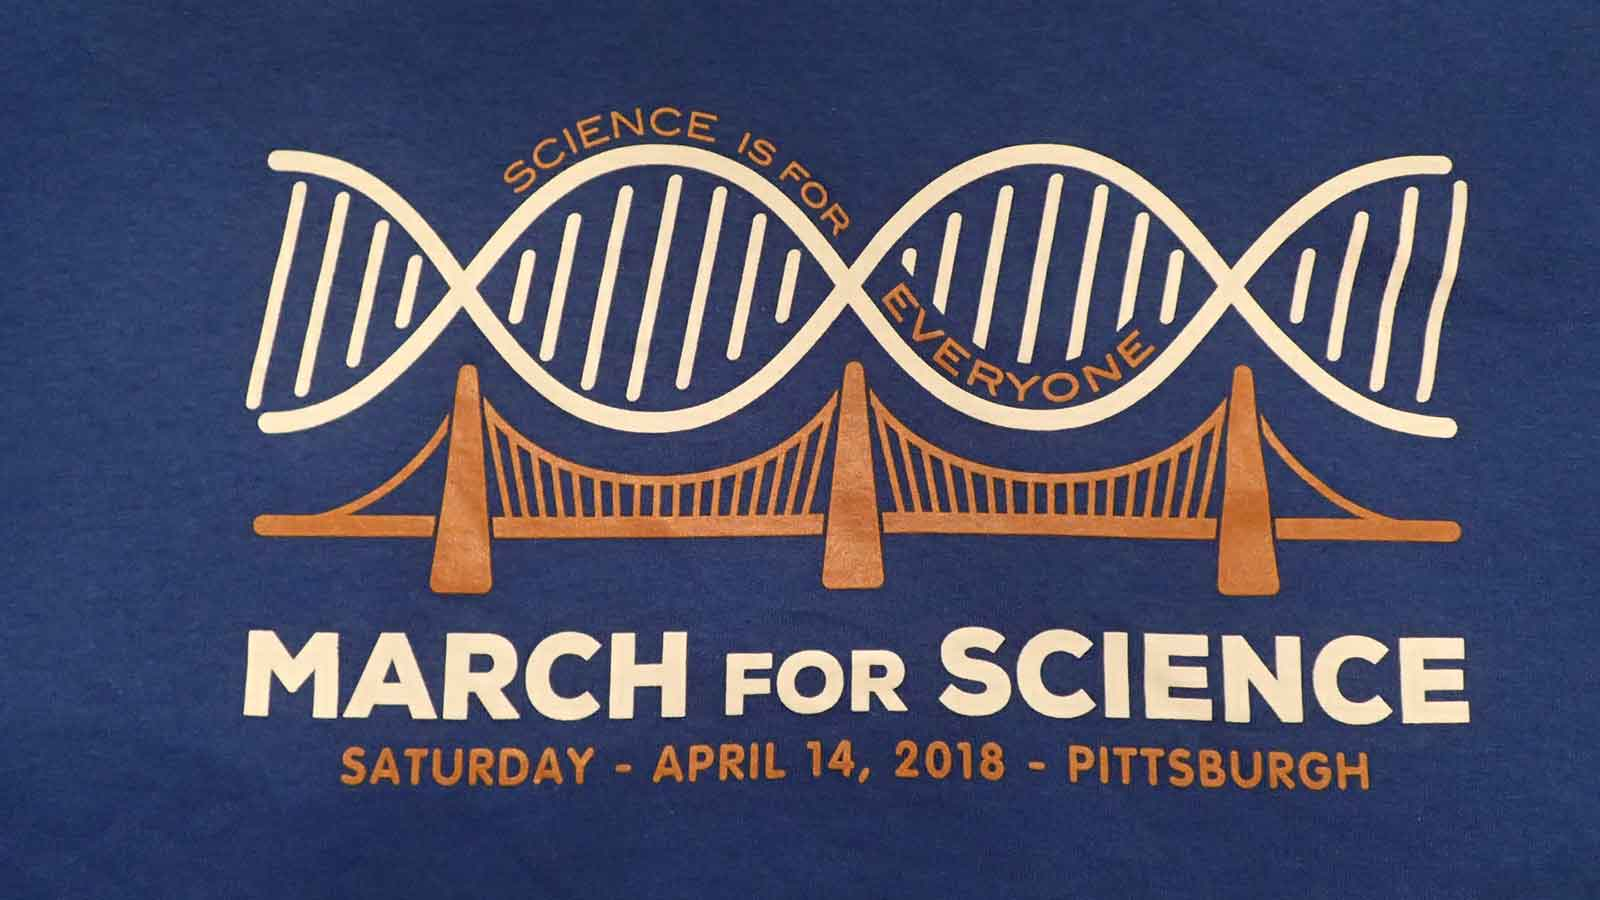 the 2018 March for Science Pittsburgh logo